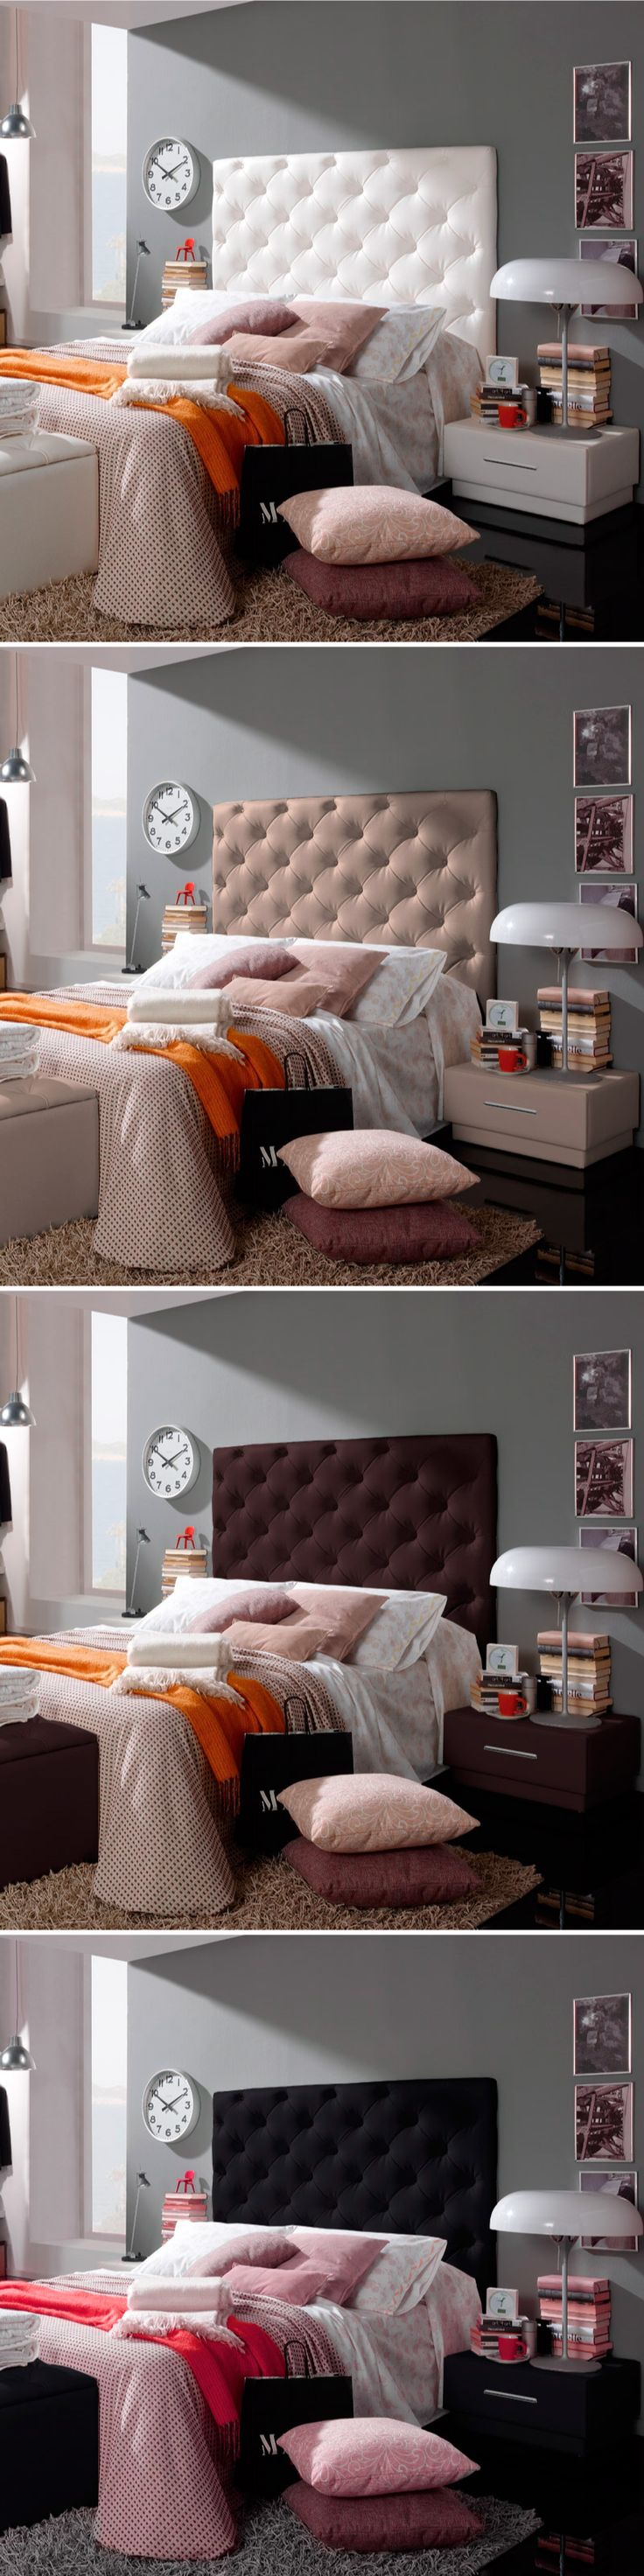 110 best Capitone images on Pinterest   Furniture, Bedrooms and ...